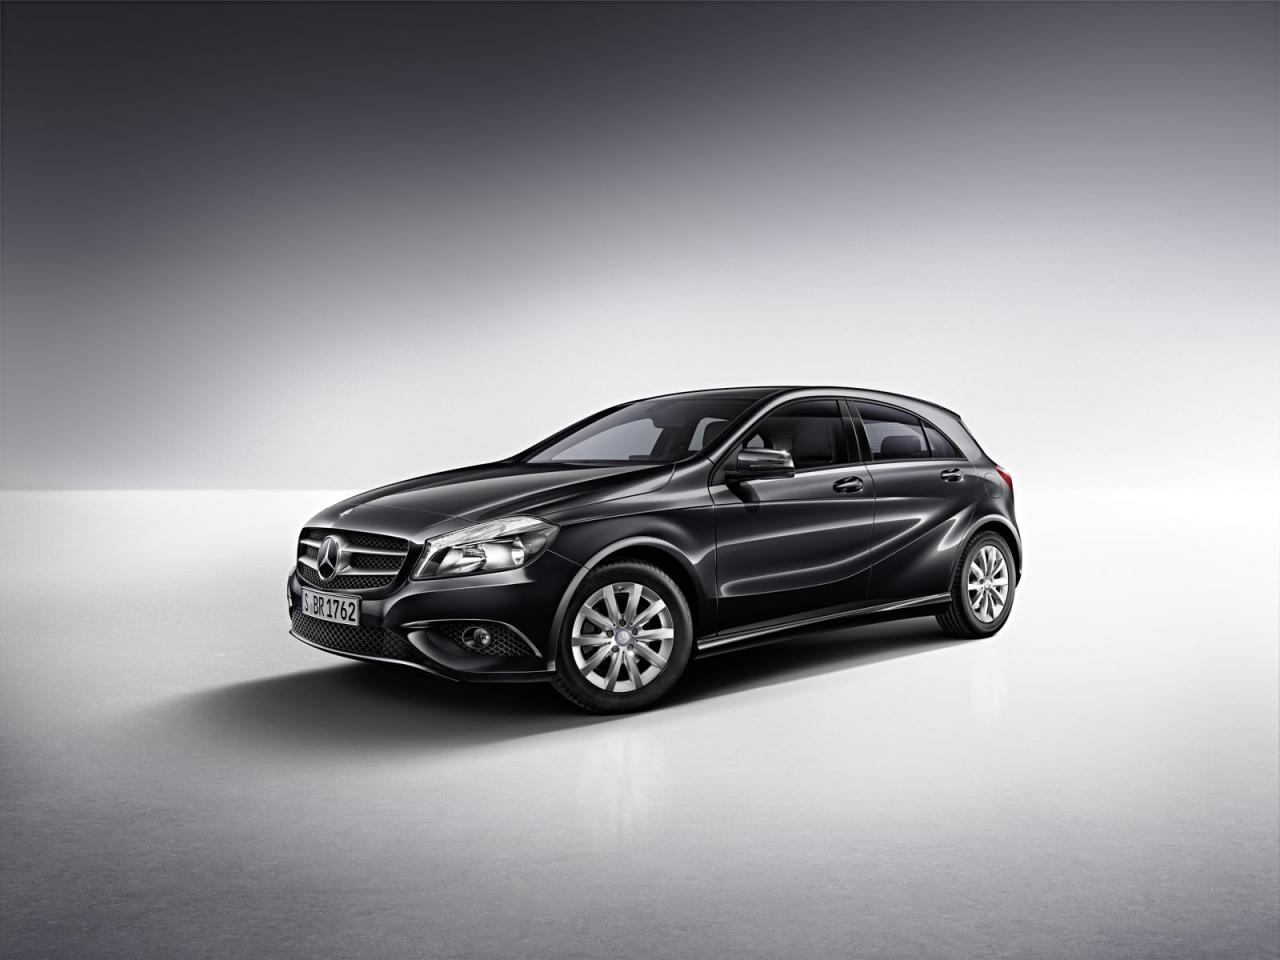 Mercedes A Class BlueEFFICIENCY Edition Mercedes Benz A Class BlueEFFICIENCY (BE) Edition Unveiled